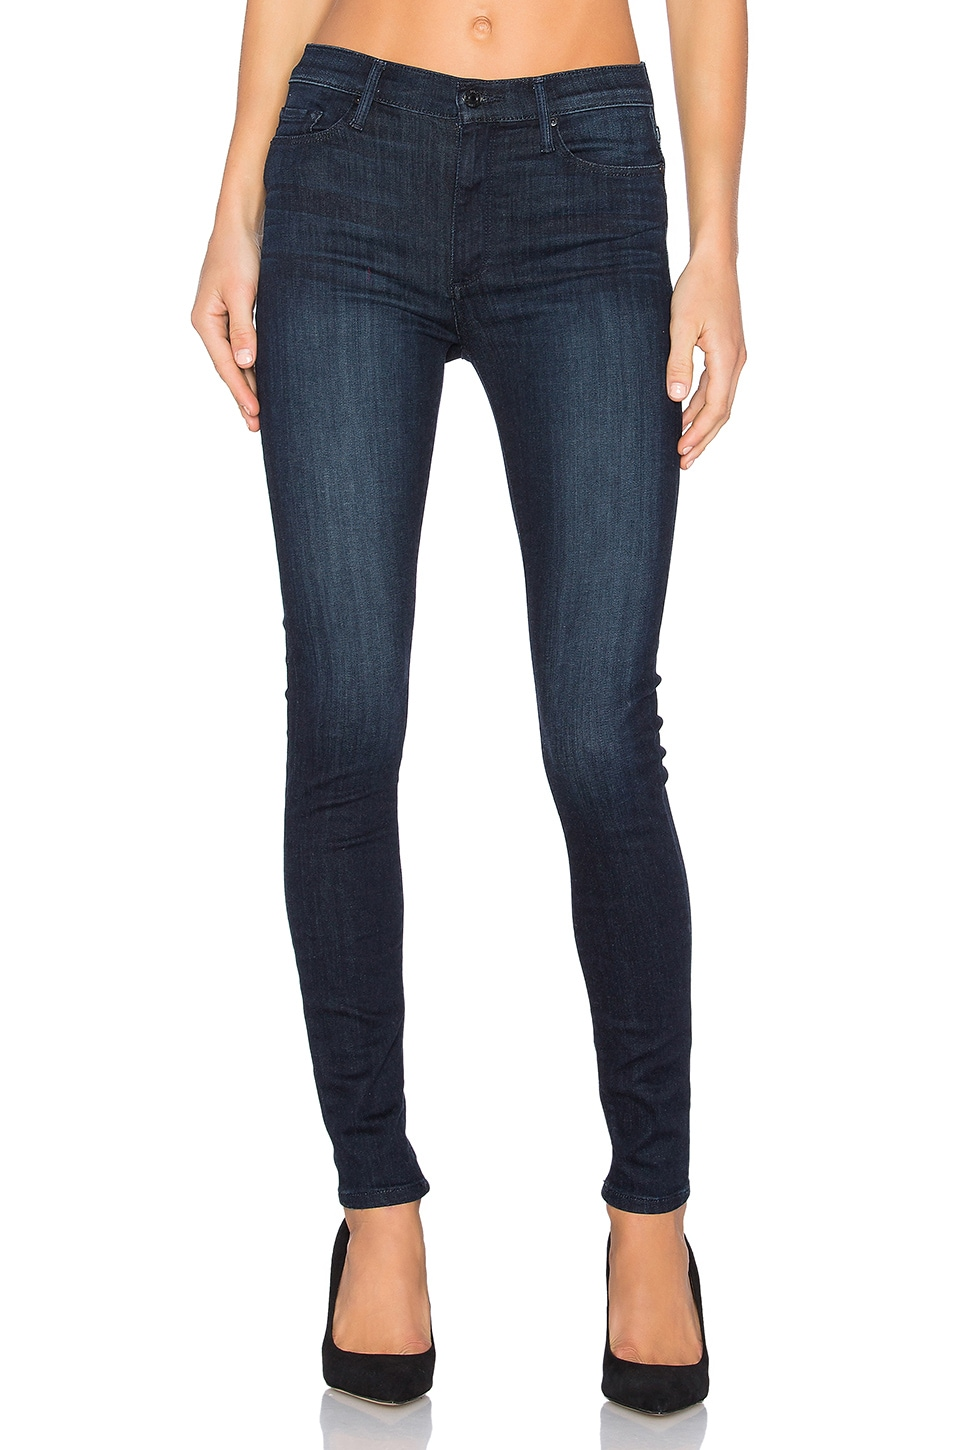 Gisele High Rise Super Skinny by Black Orchid